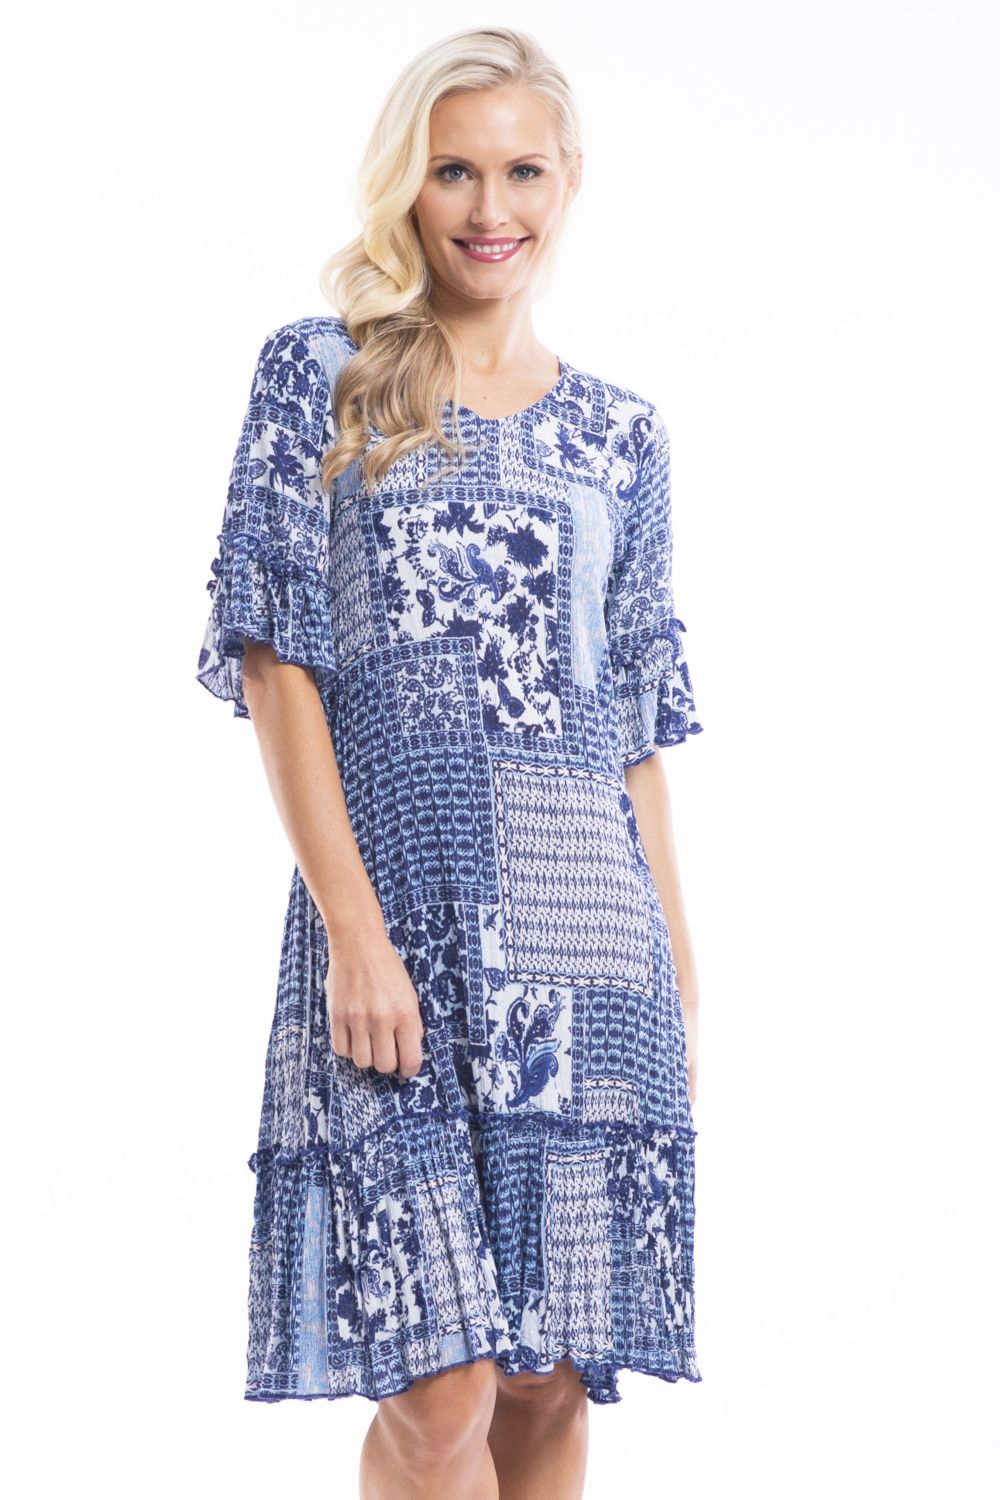 Betty Blue Patch Tunic | I Love Tunics | Tunic Tops | Tunic Dresses | Women's Tops | Plus Size Australia | Mature Fashion